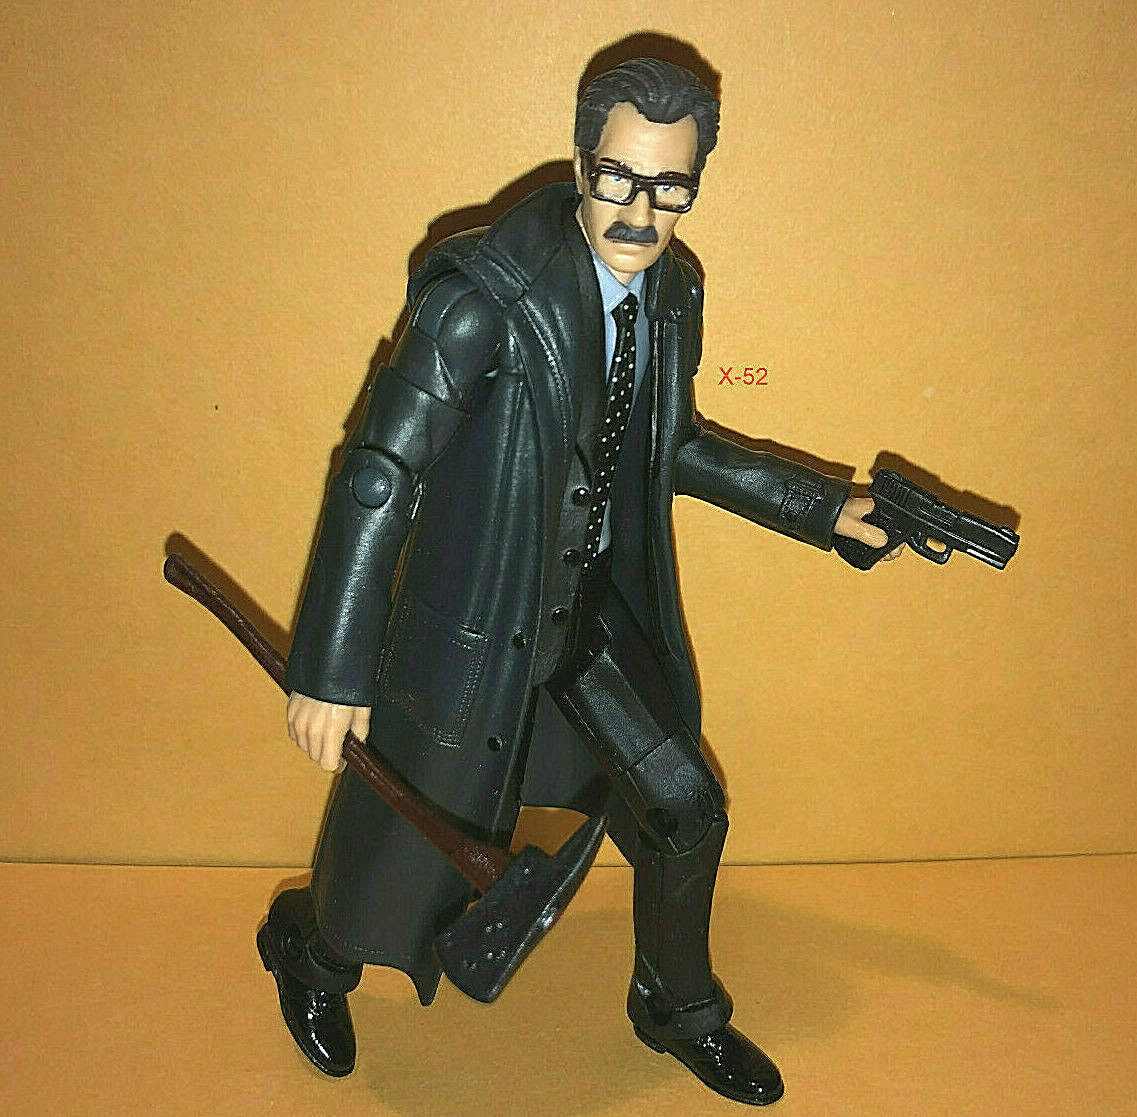 Gordon Dark Movie Figure Toy Gary Oldman Batman Walmart Exclusive